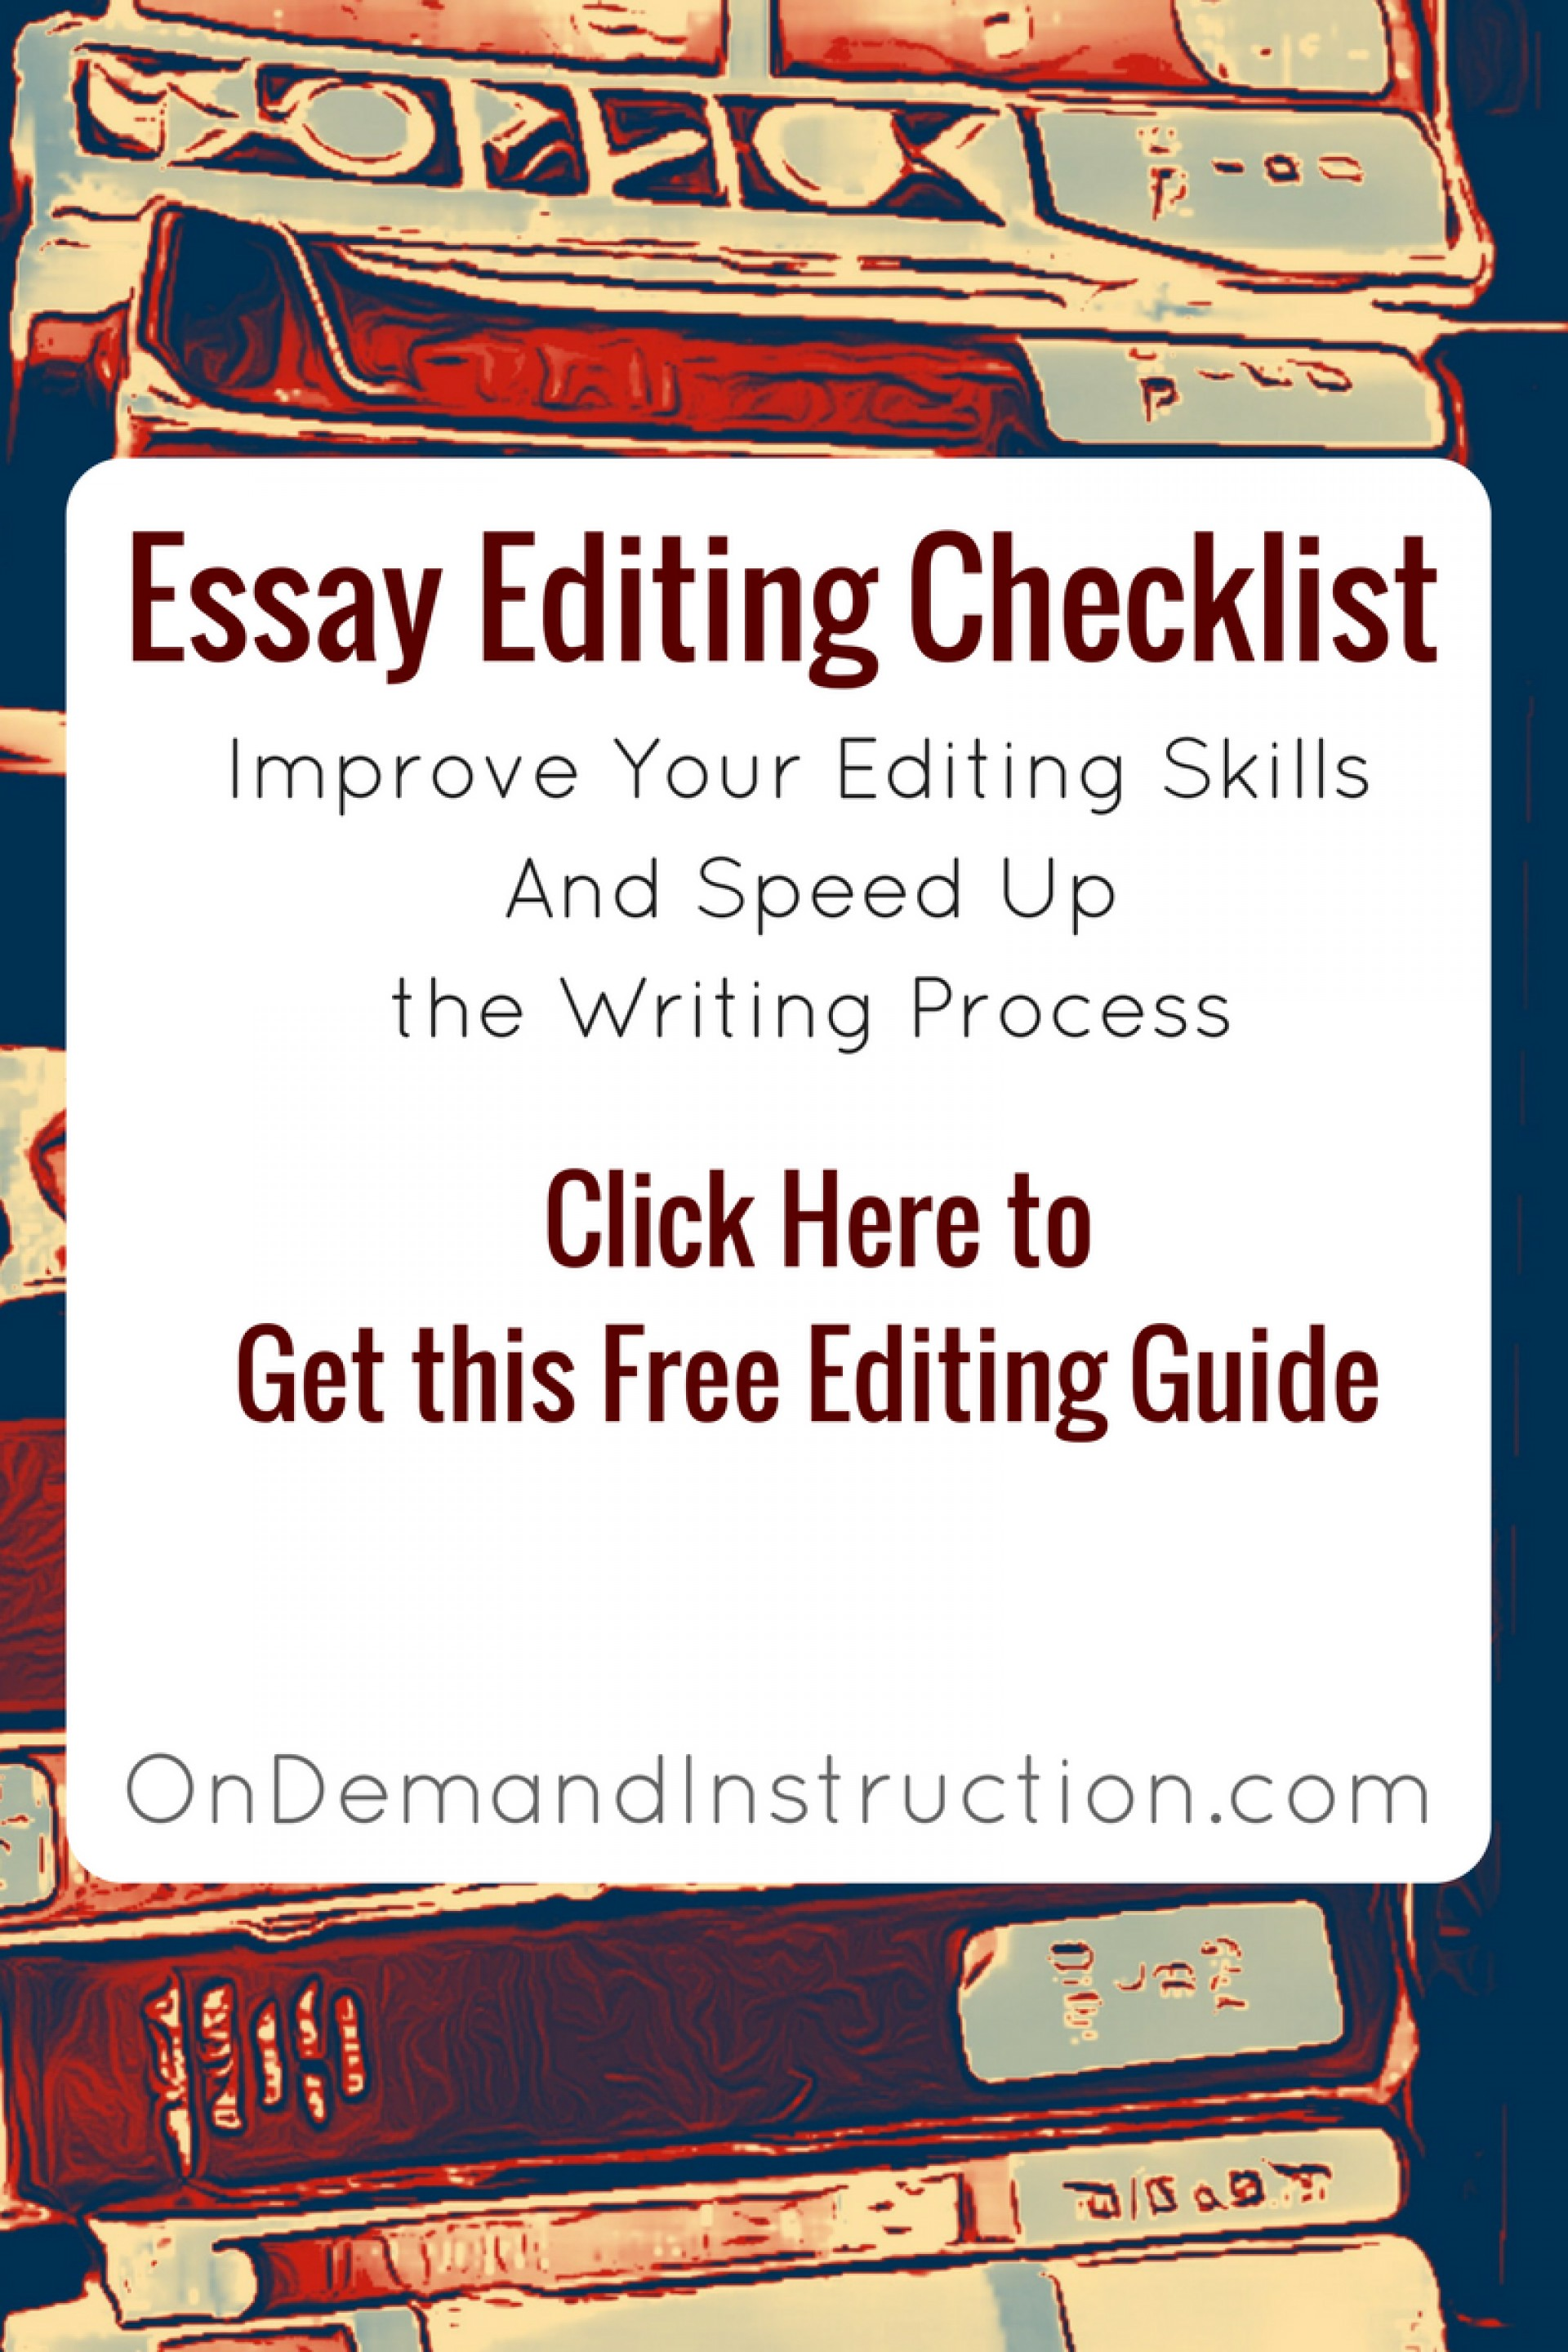 008 Essay Example Online Top Editor College Free Best 1920